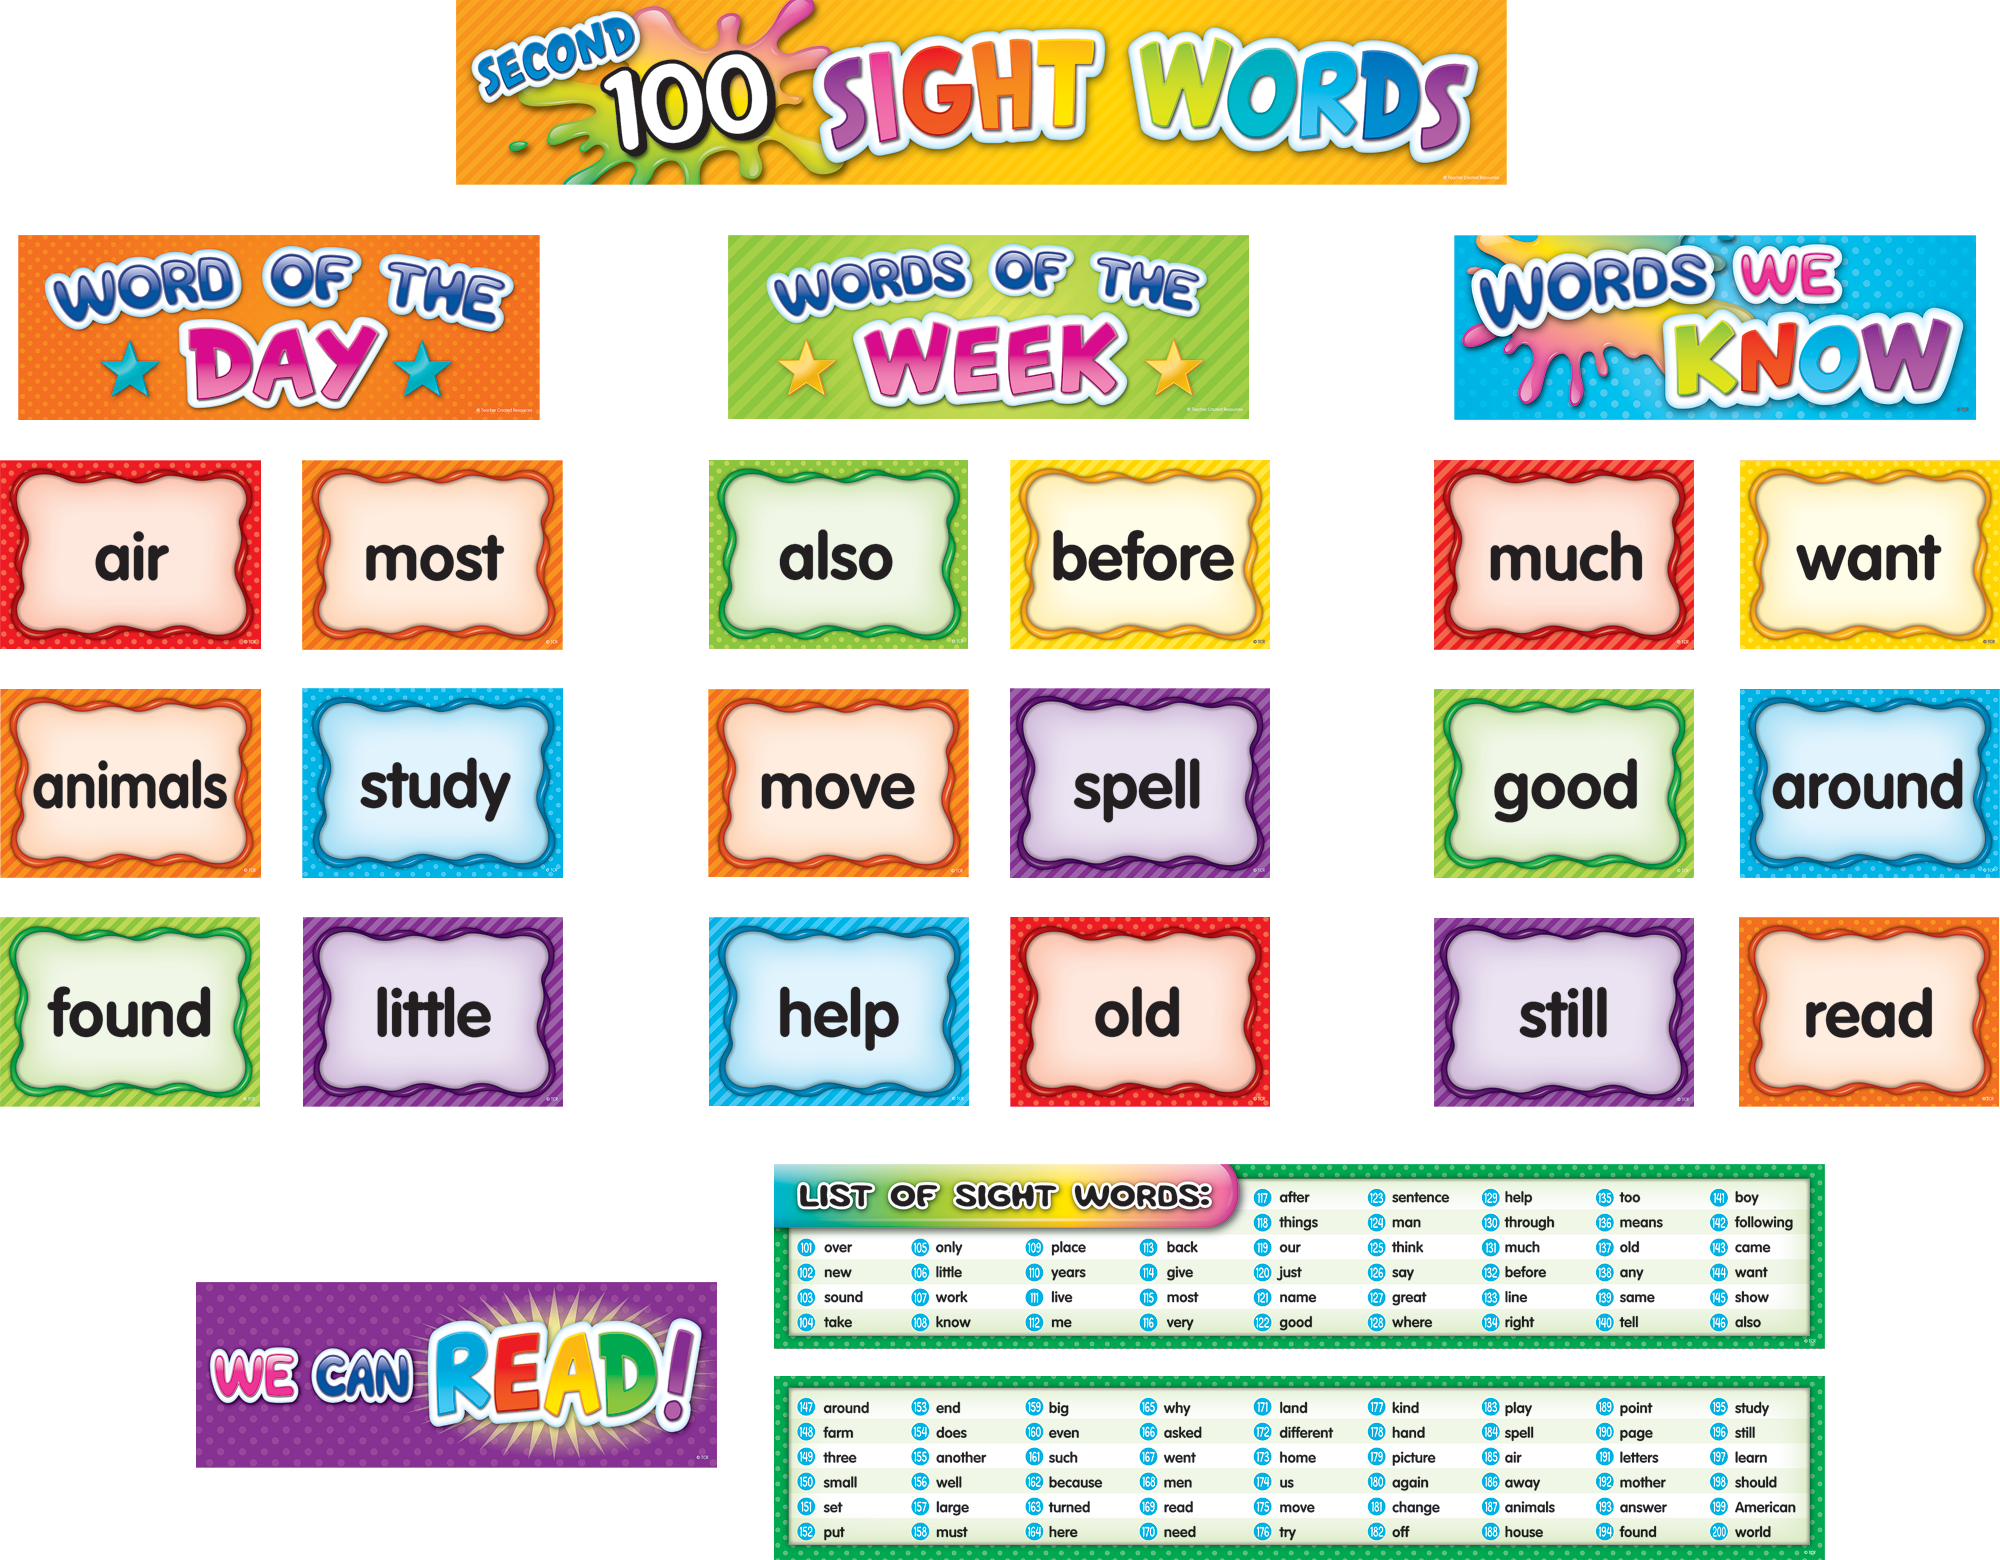 Second 100 Sight Words Pocket Chart Cards